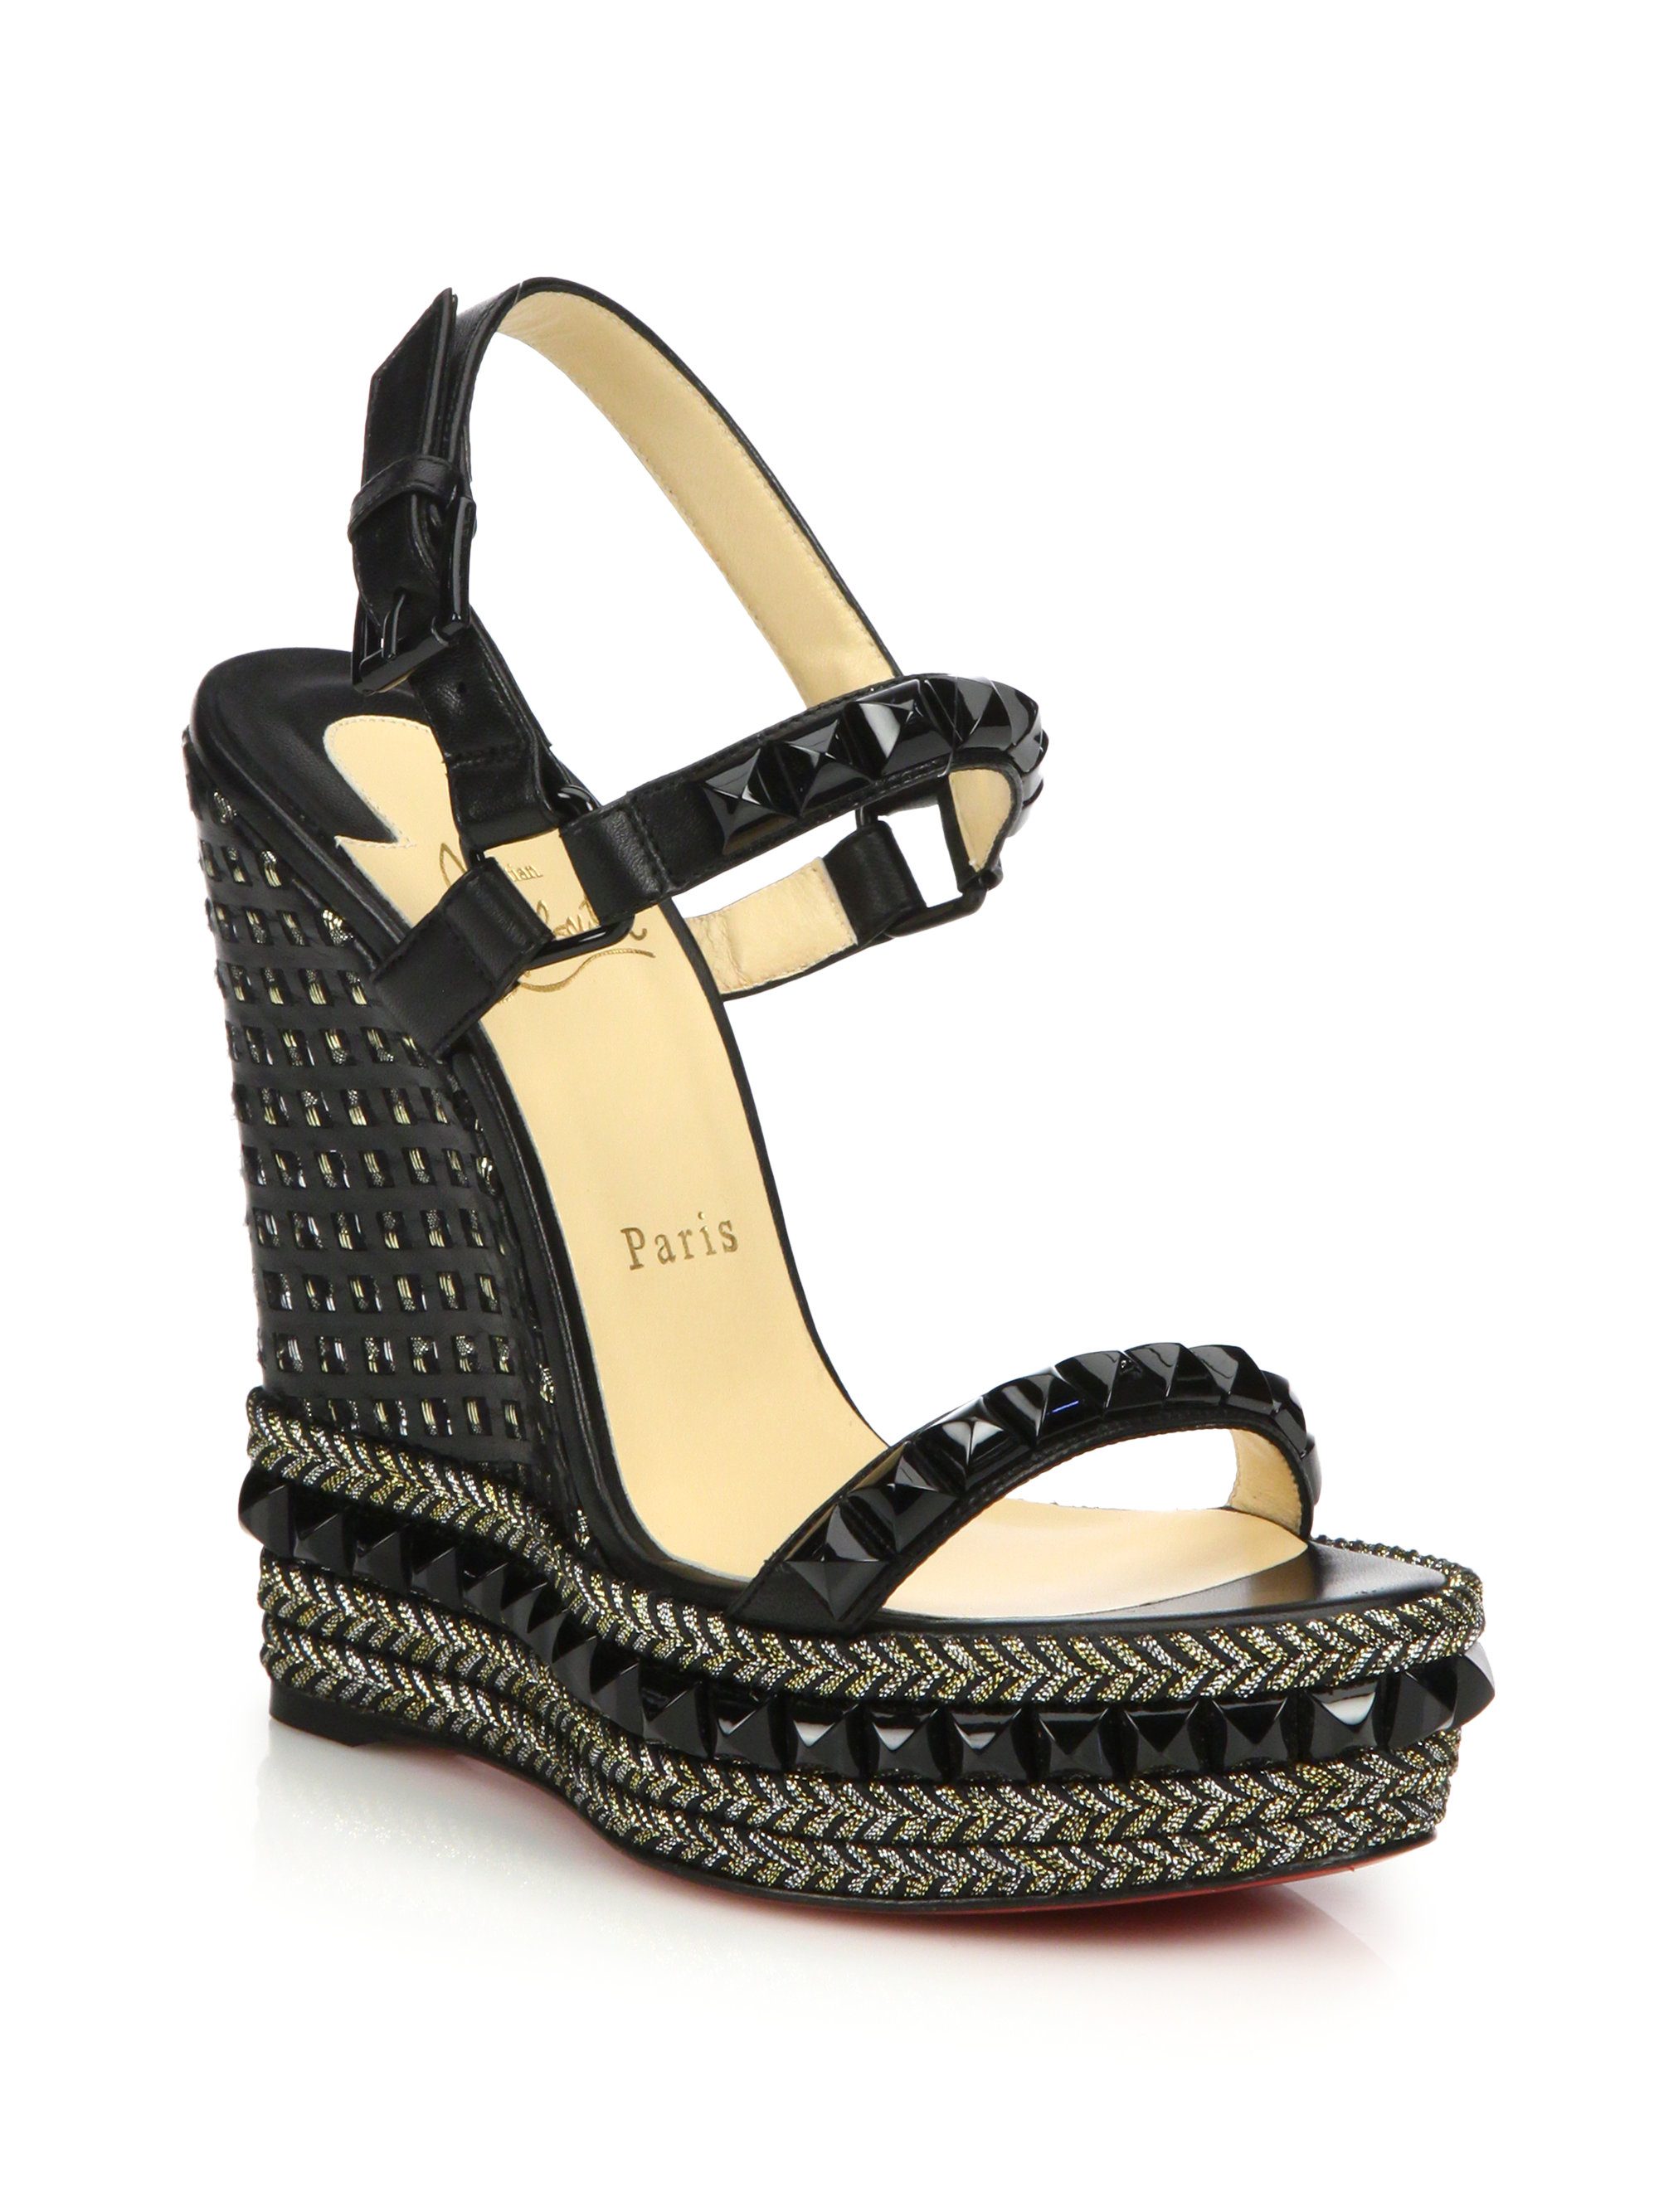 louis vuitton knock off shoes - Christian louboutin Cataclou Studded Leather Espadrille Wedge ...